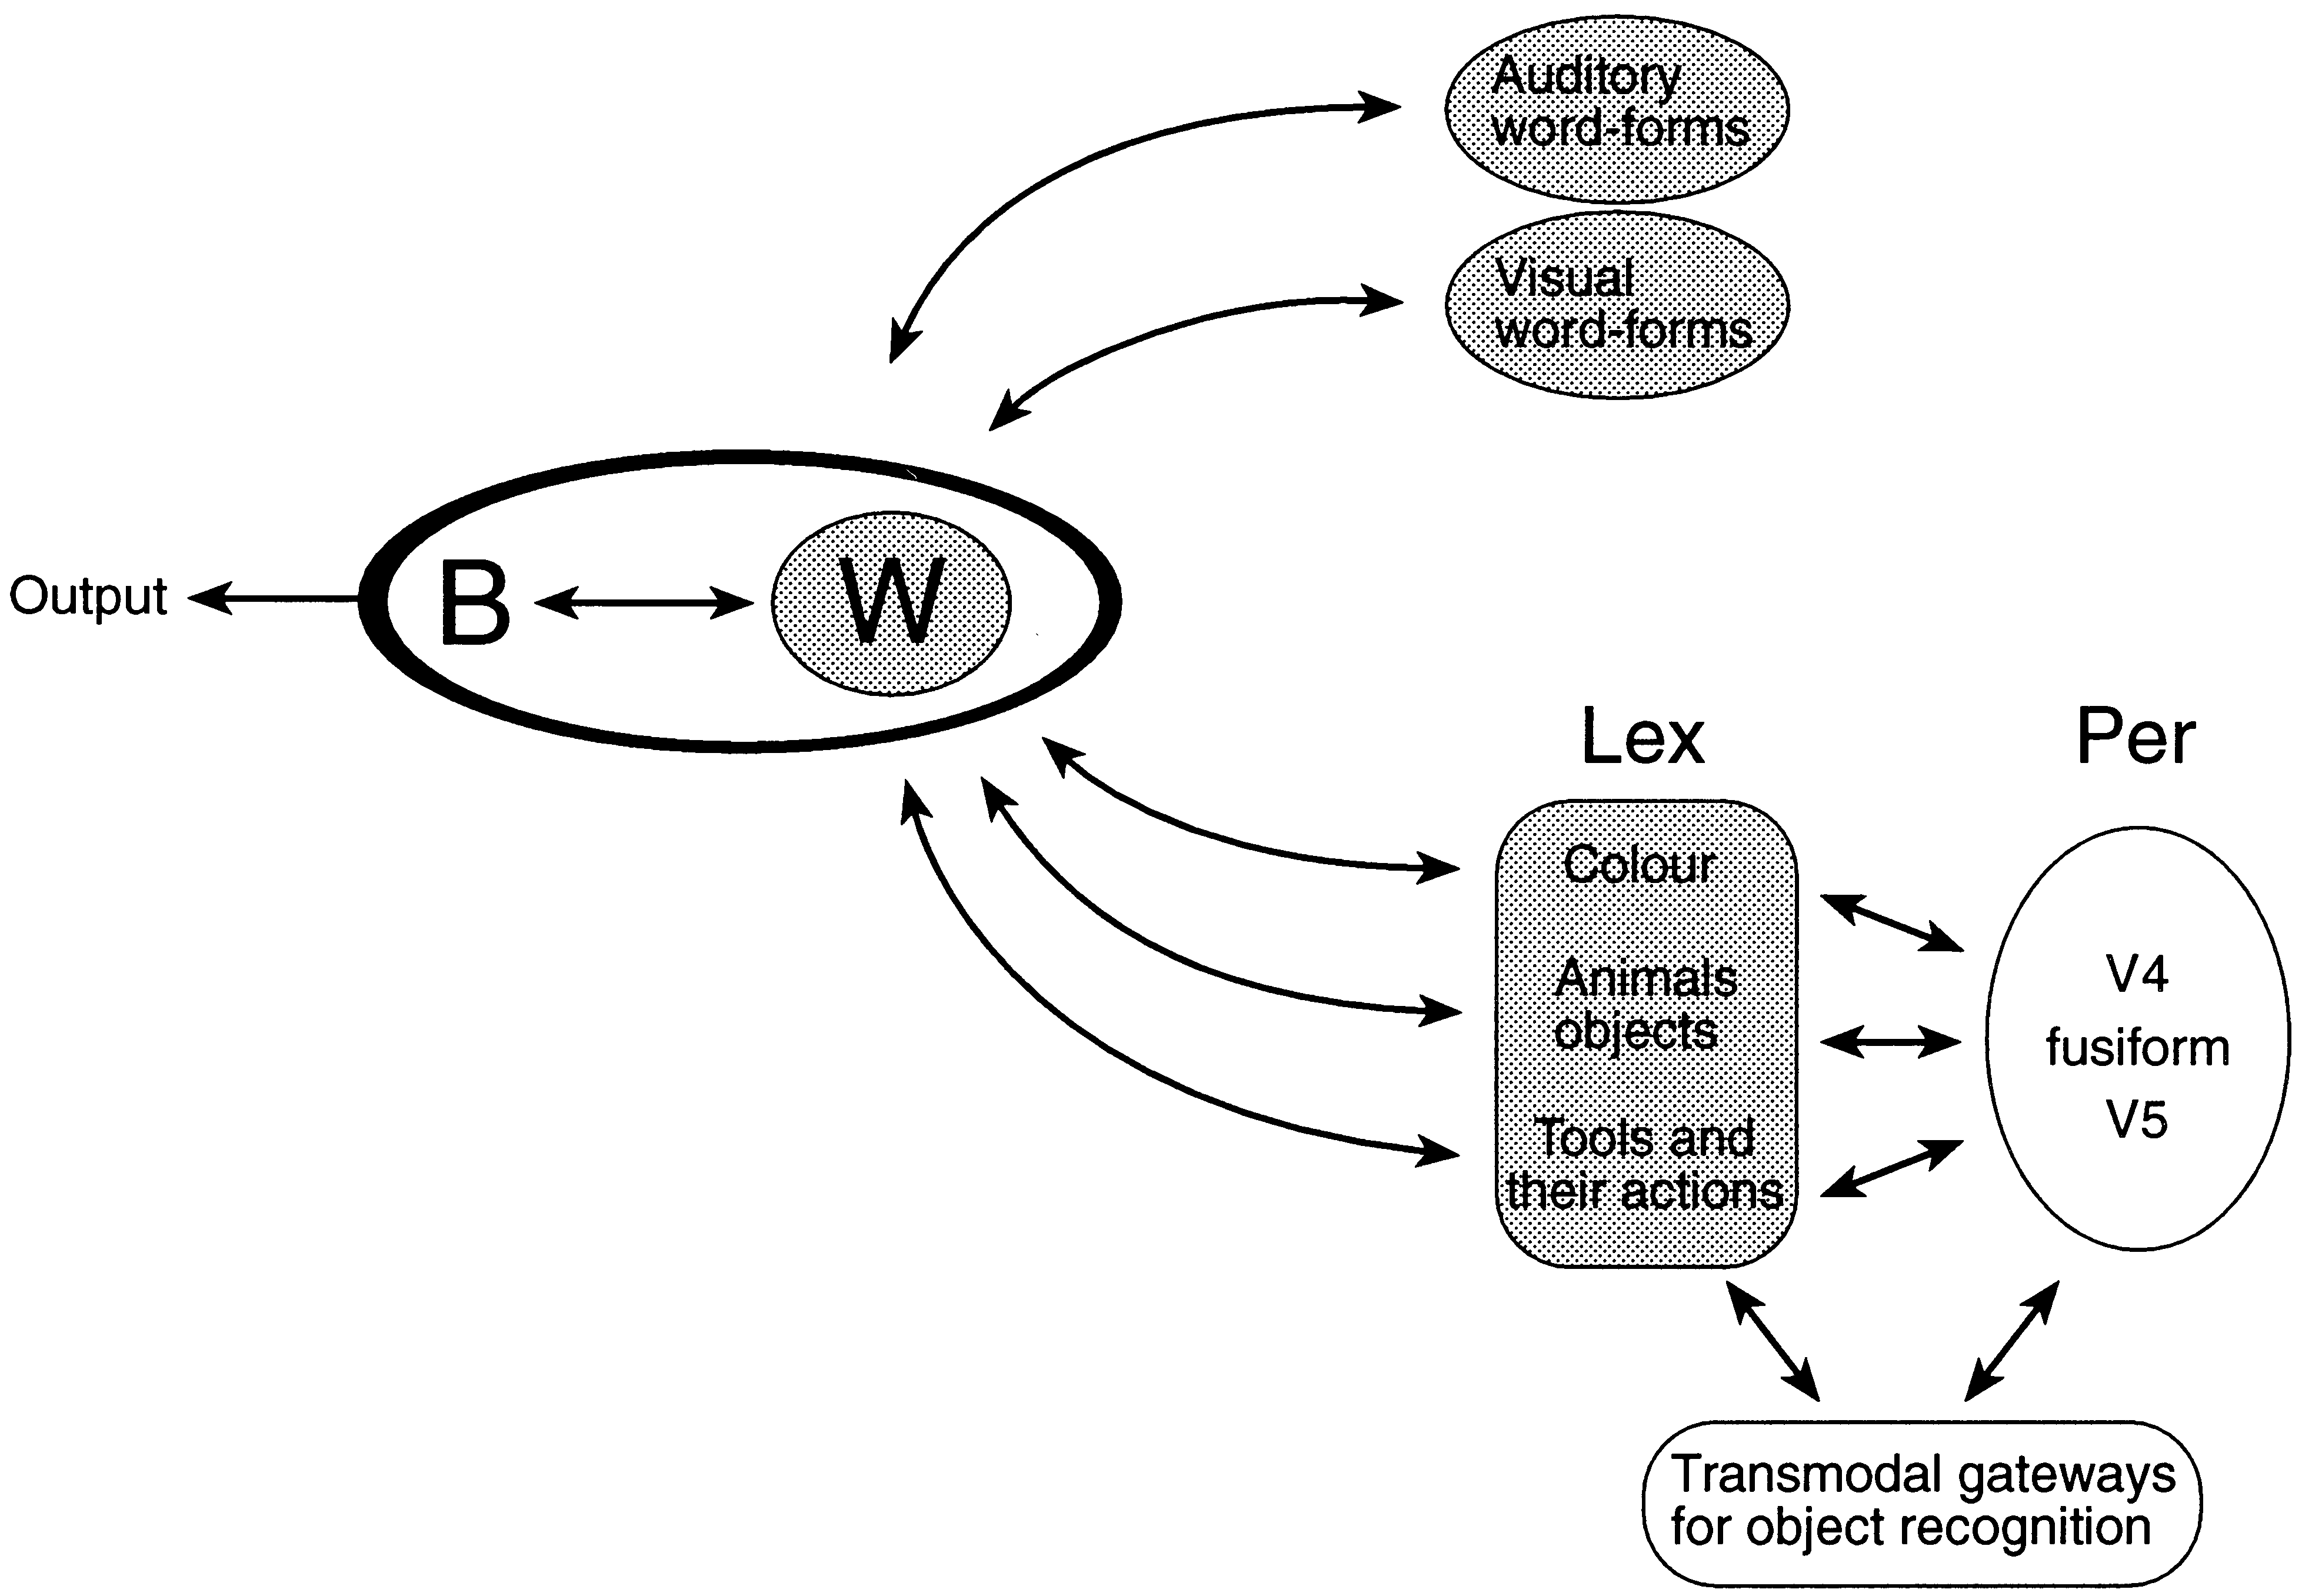 From sensation to cognition 1031 Fig. 4 A highly simplified schematic representation of some aspects of lexical retrieval and word comprehension. Arrows represent reciprocal neural connections.